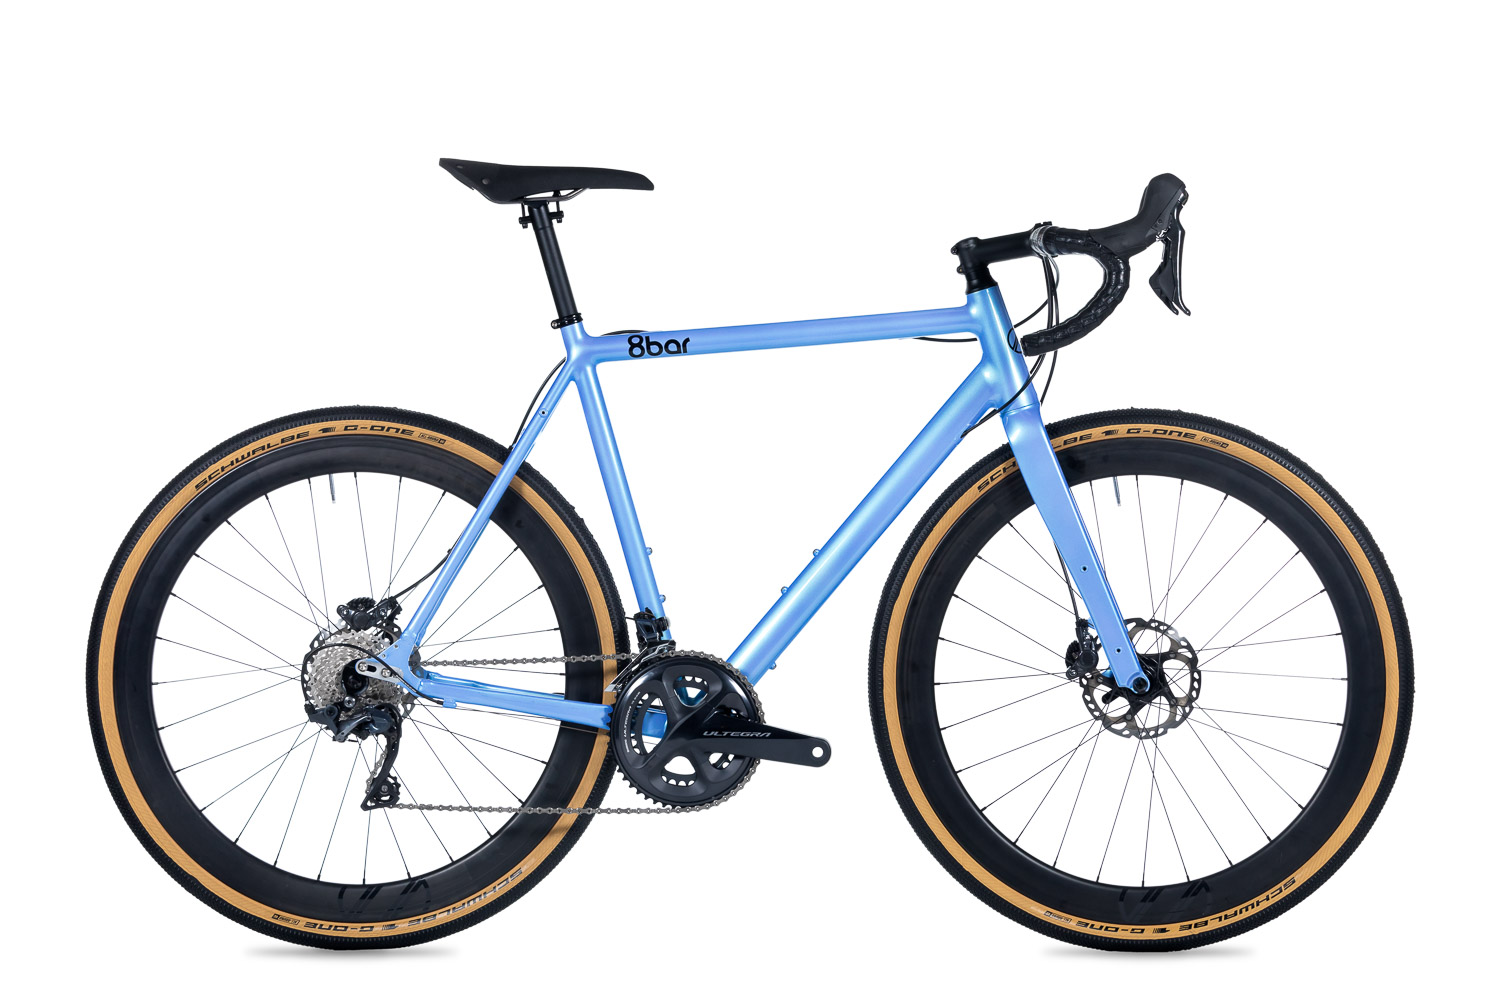 8bar complete bike mitte gravel pro blue studio lr 1 - MITTE Singlespeed Cyclocross - Comp